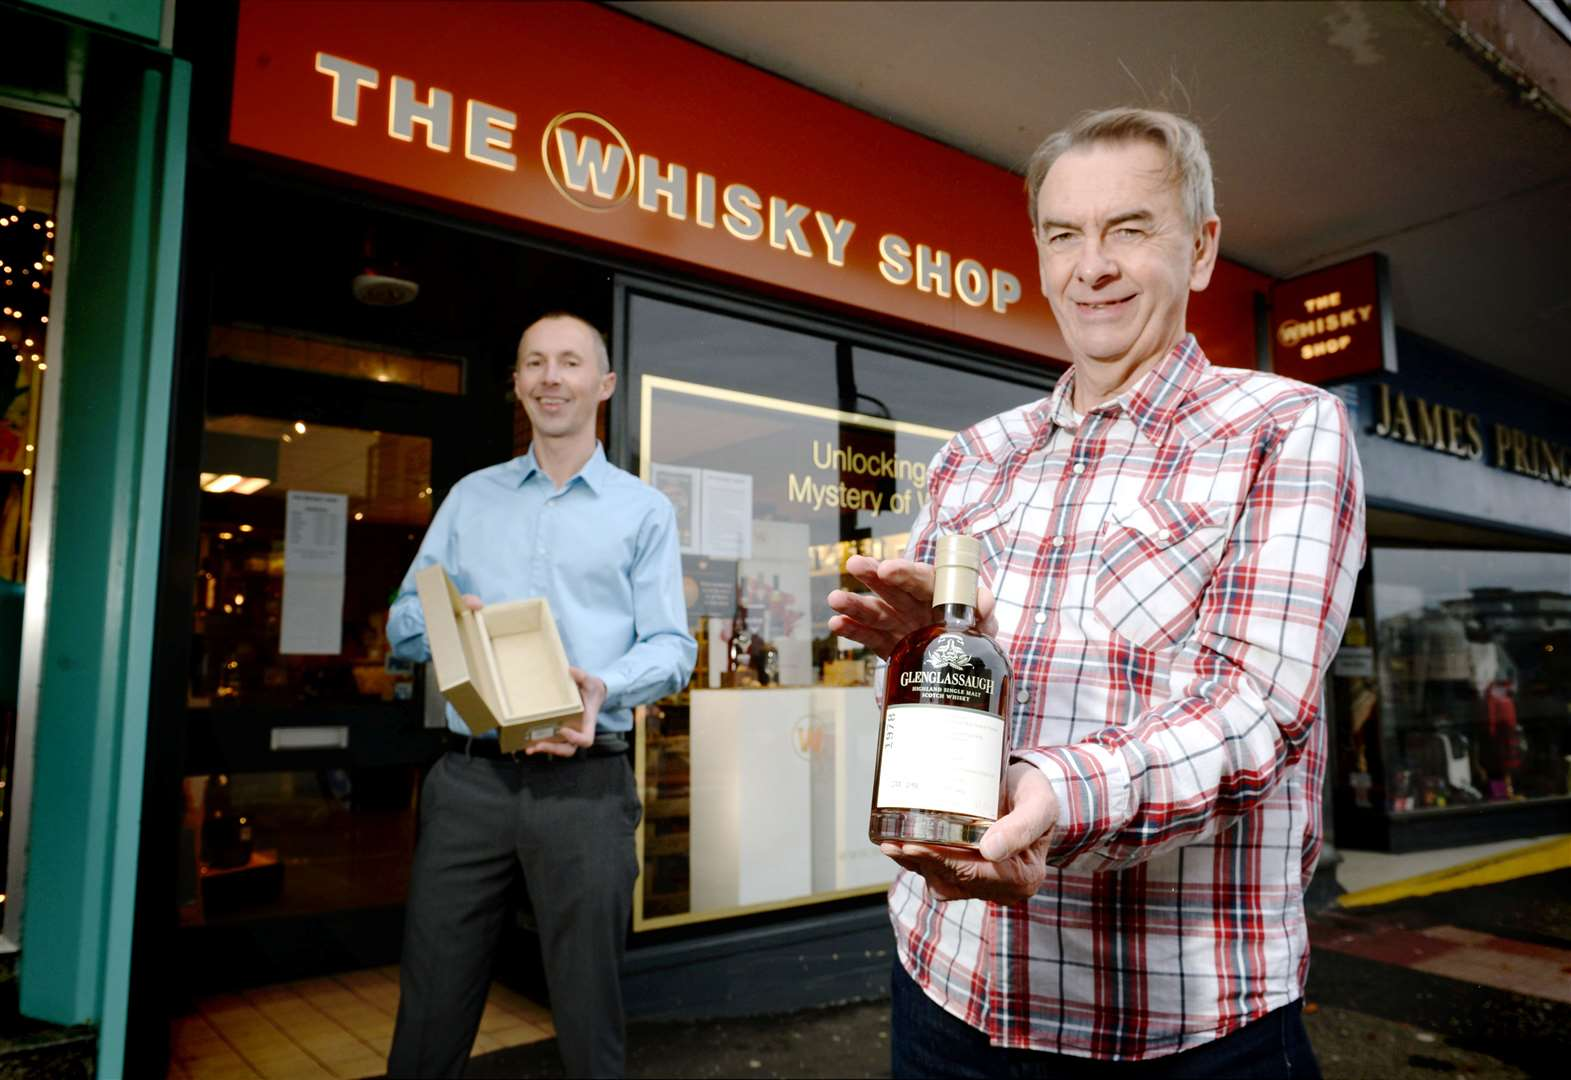 Win Of £999 Bottle Of Whisky Is A Dram Coincidence For Highland Man photo